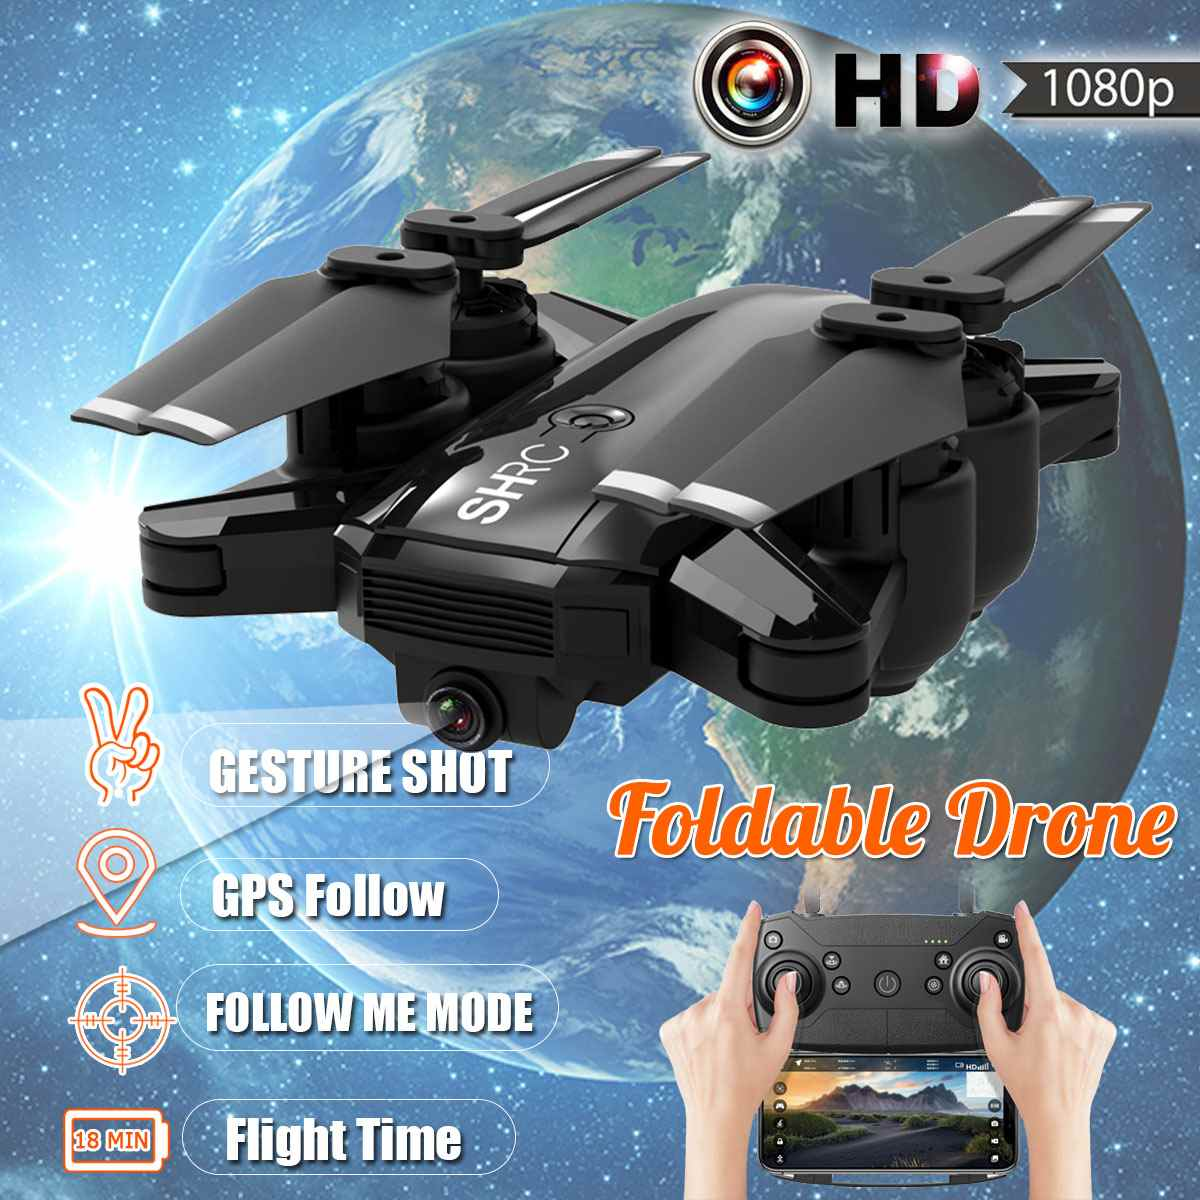 GPS Drone Quadcopter With Camera HD 1080P Professional Foldable FPV 5.0Ghz 4CH Wifi Follow Me RC Drones Set Circle / Point FlyGPS Drone Quadcopter With Camera HD 1080P Professional Foldable FPV 5.0Ghz 4CH Wifi Follow Me RC Drones Set Circle / Point Fly